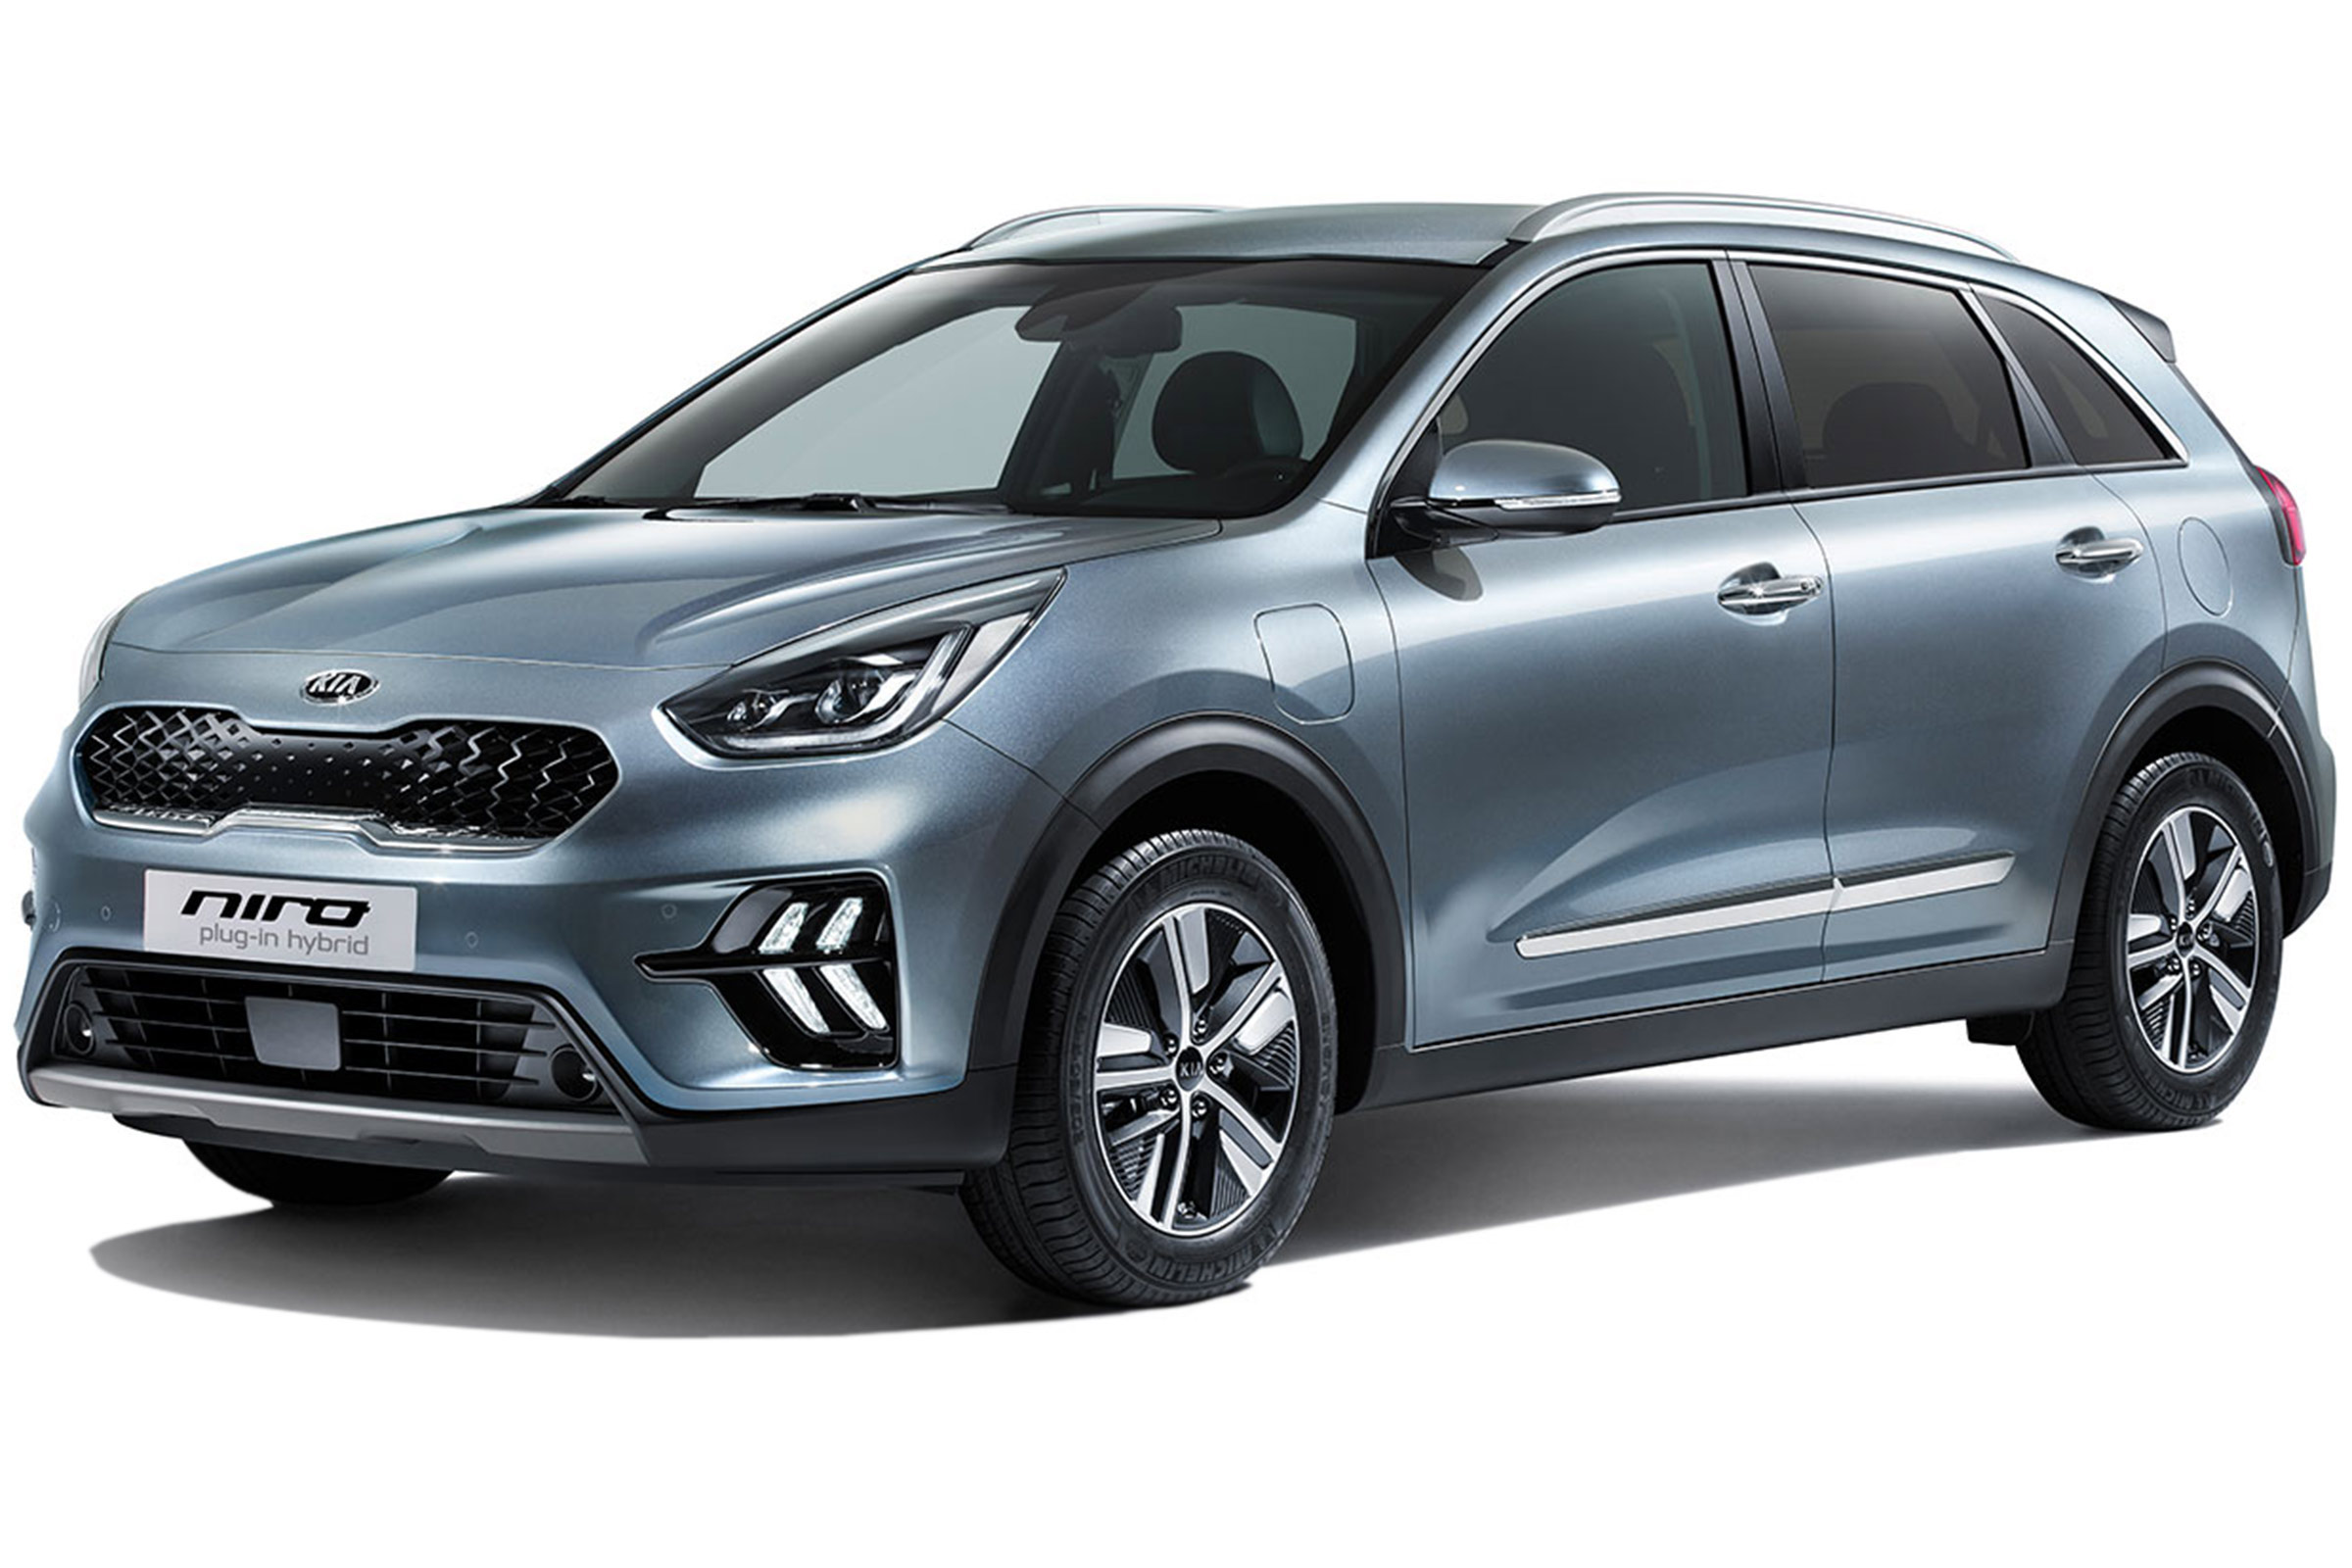 Kia Niro Suv Practicality Boot Space 2020 Review Carbuyer